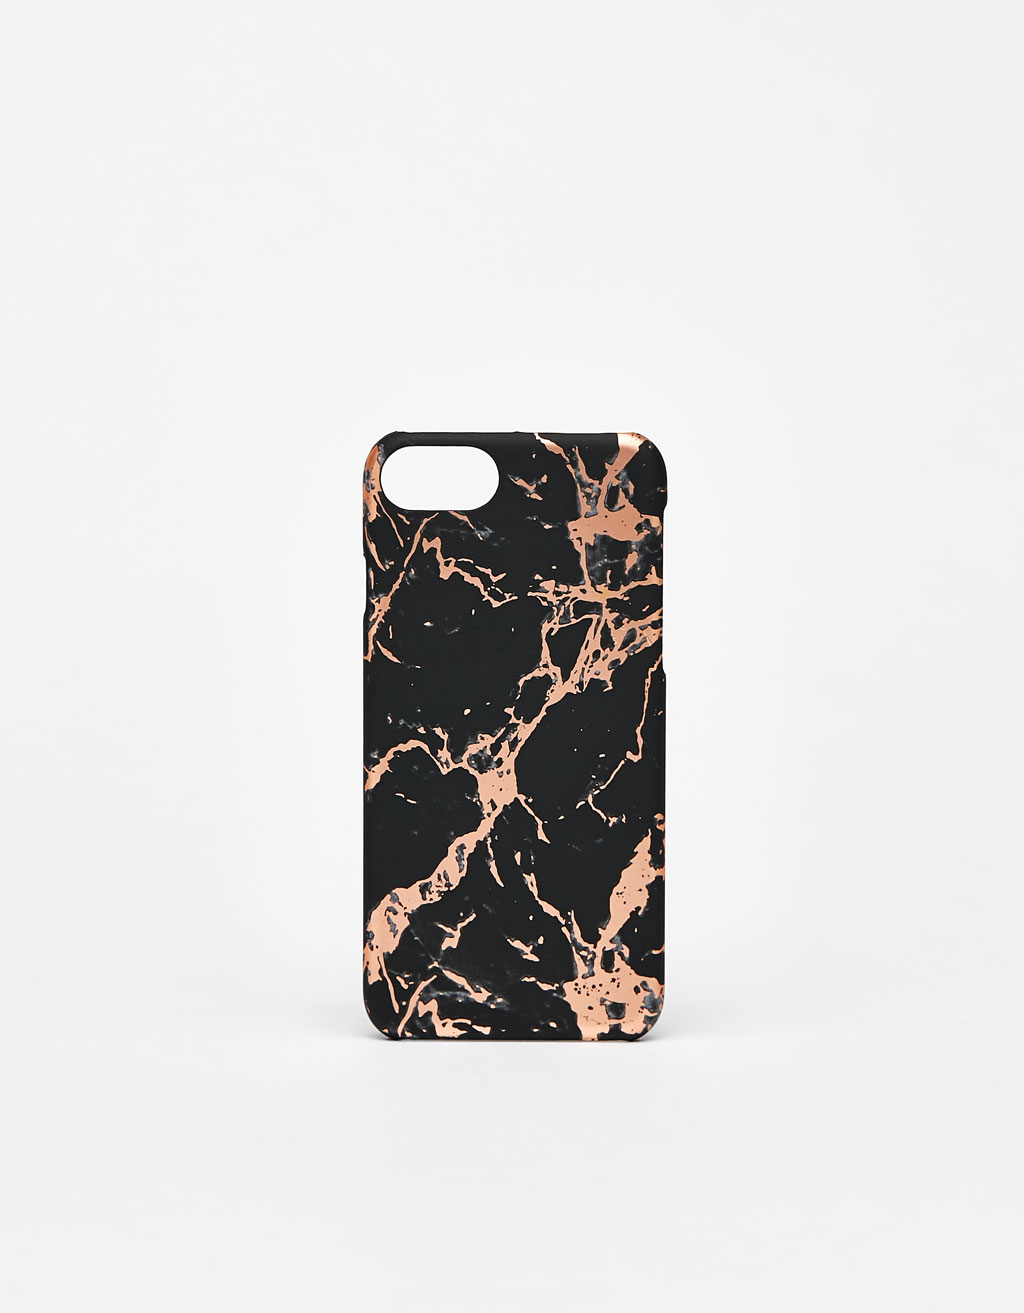 Marble-effect iPhone 6/6s/7/8 case